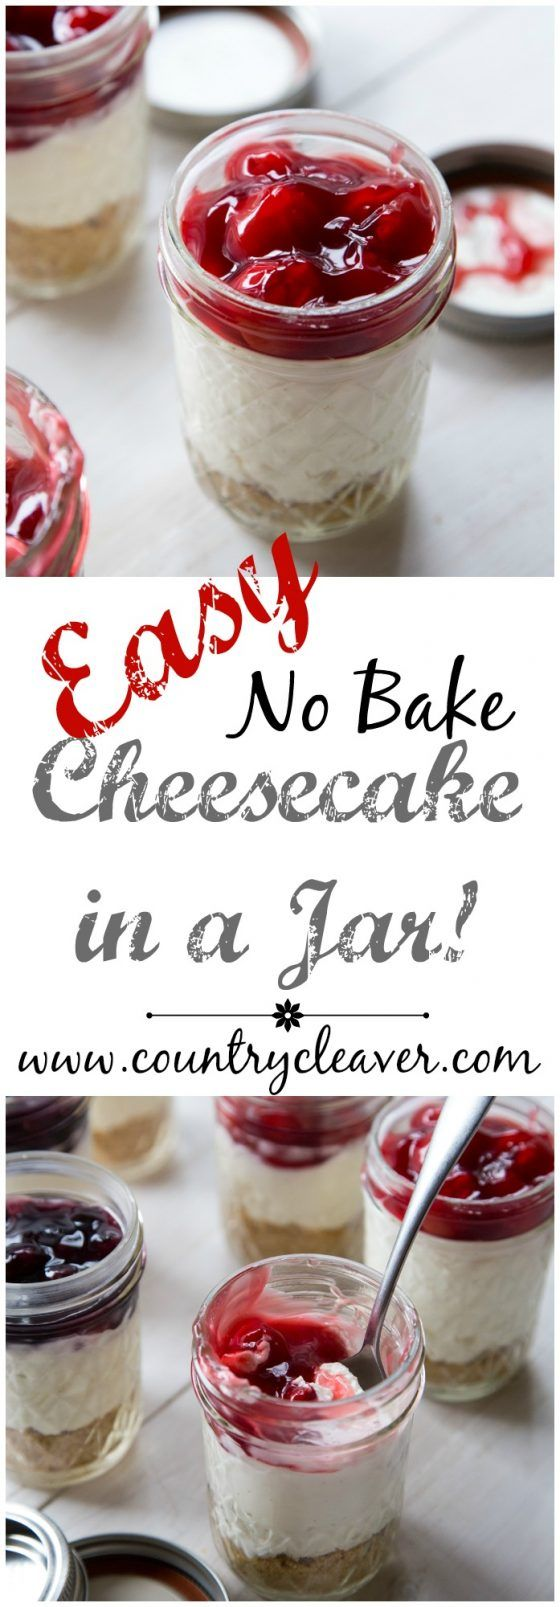 Easy No Bake Cheesecake In a Jar